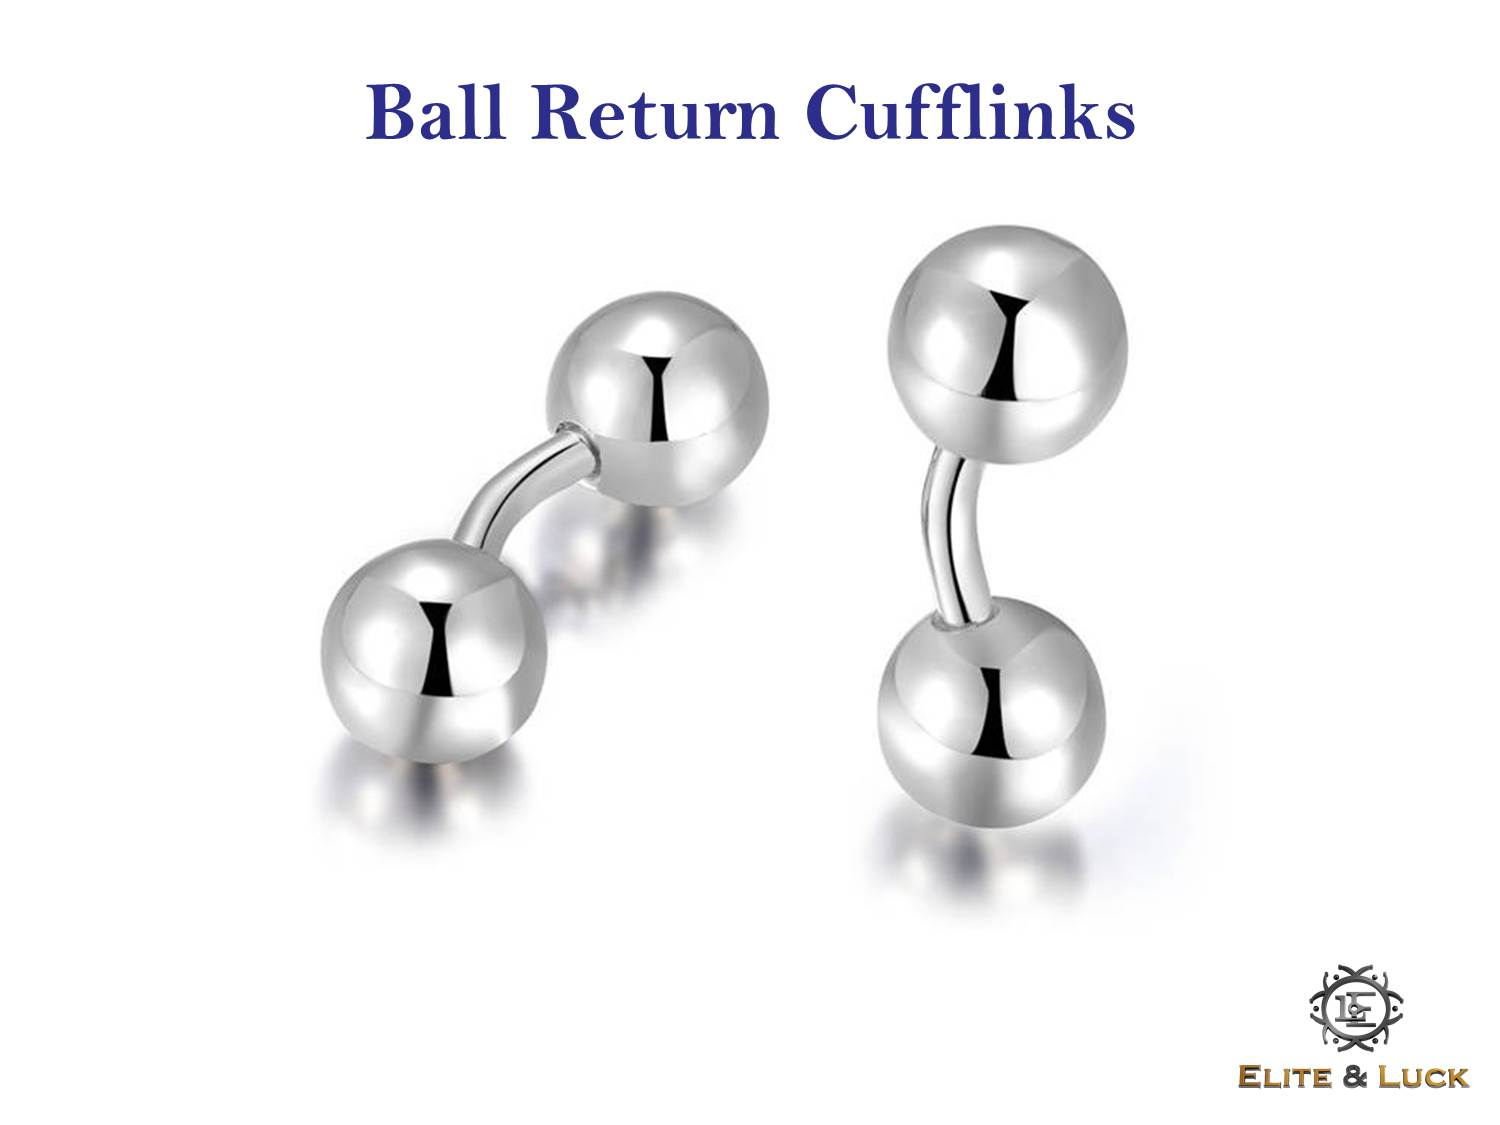 Ball Return Cufflinks